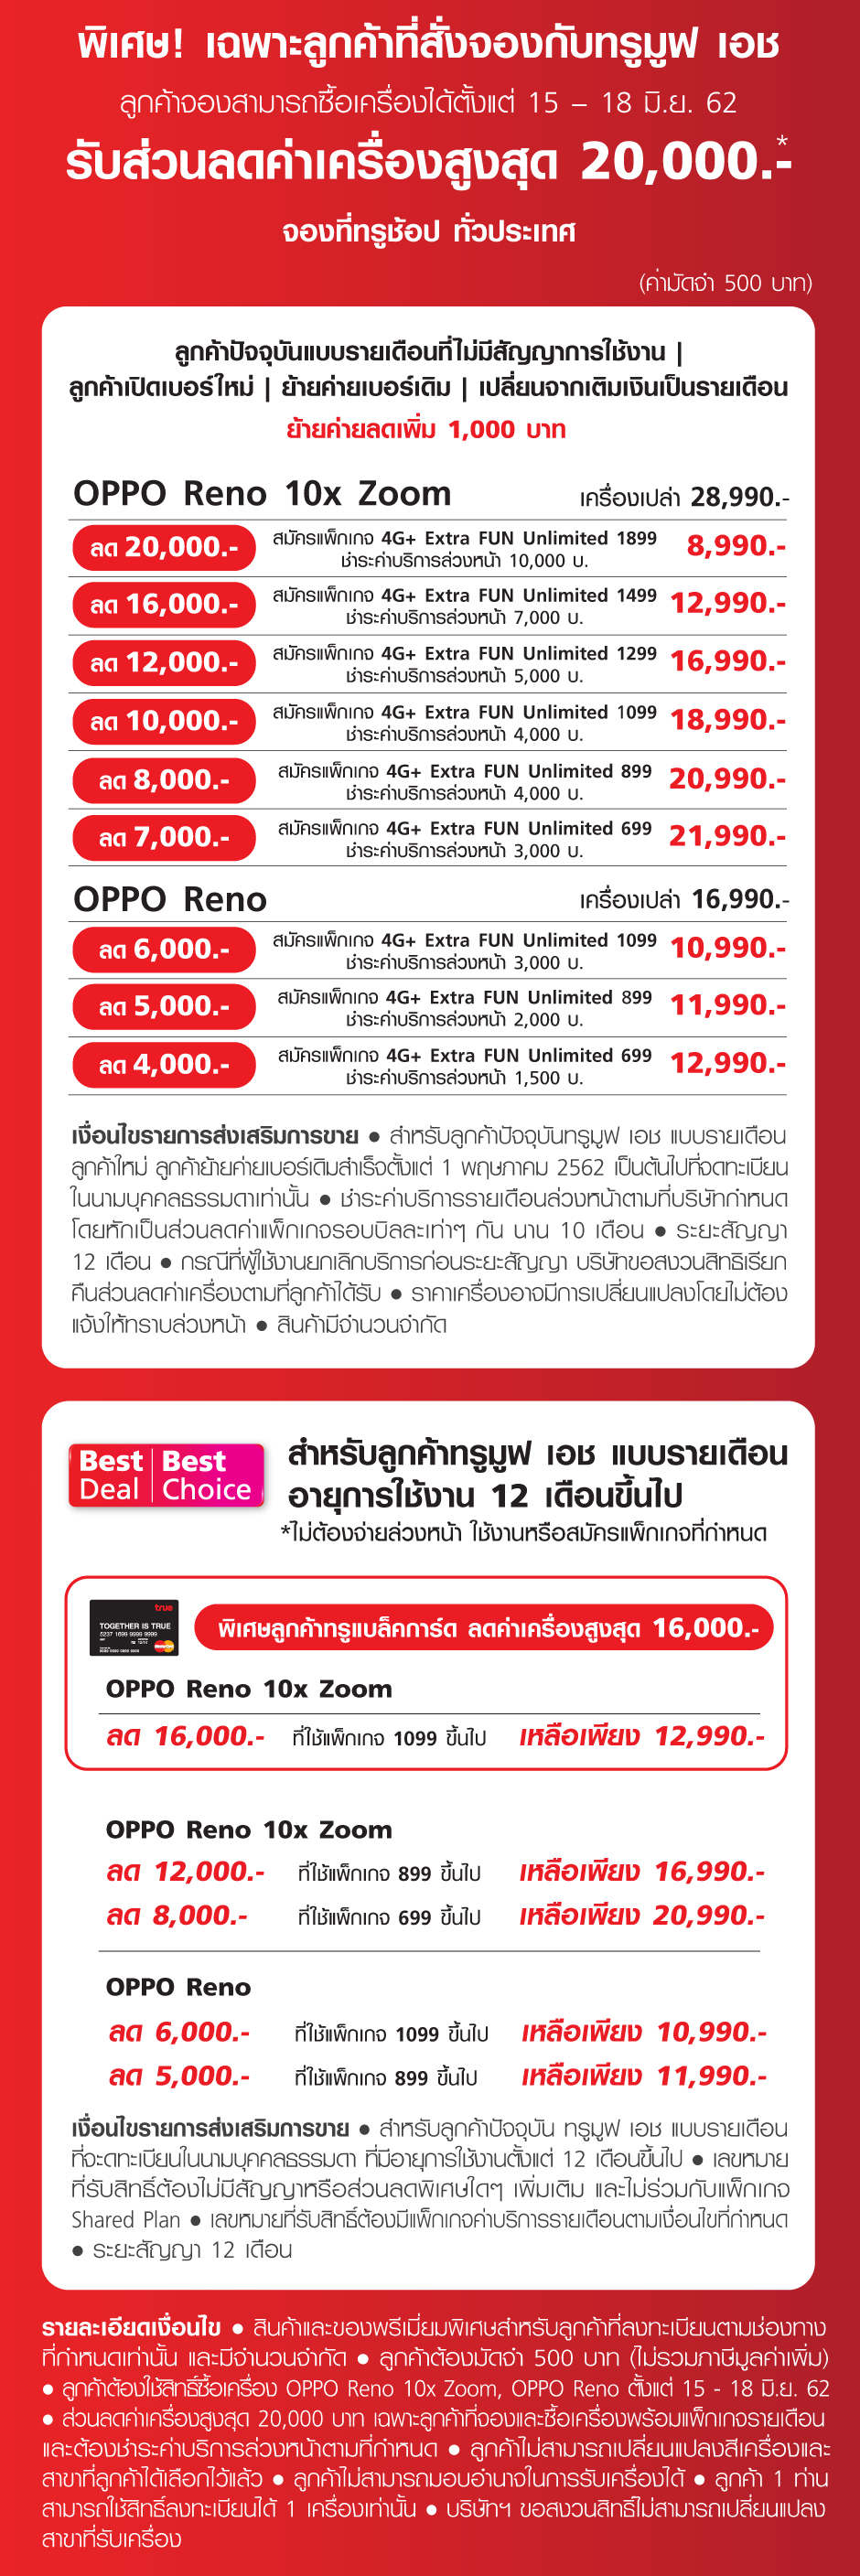 AW-OPPO-Reno-Landing-Page-940-TH-P2